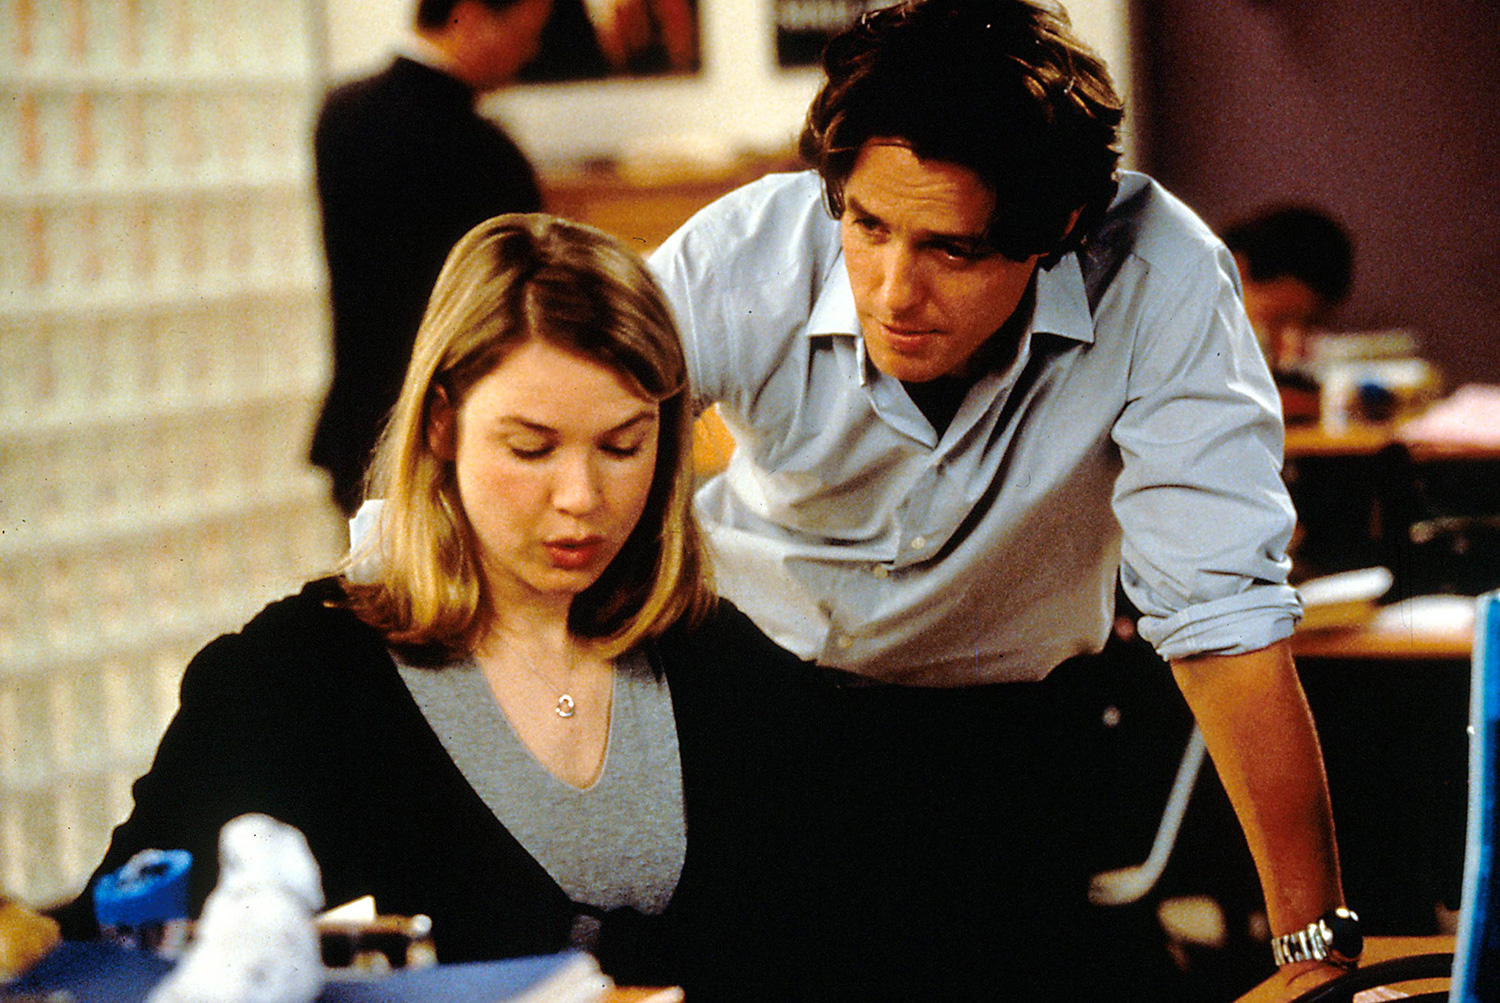 Editorial use only. No book cover usage. Mandatory Credit: Photo by Moviestore/Shutterstock (1552995a) Bridget Jones's Diary, Renee Zellweger, Hugh Grant Film and Television